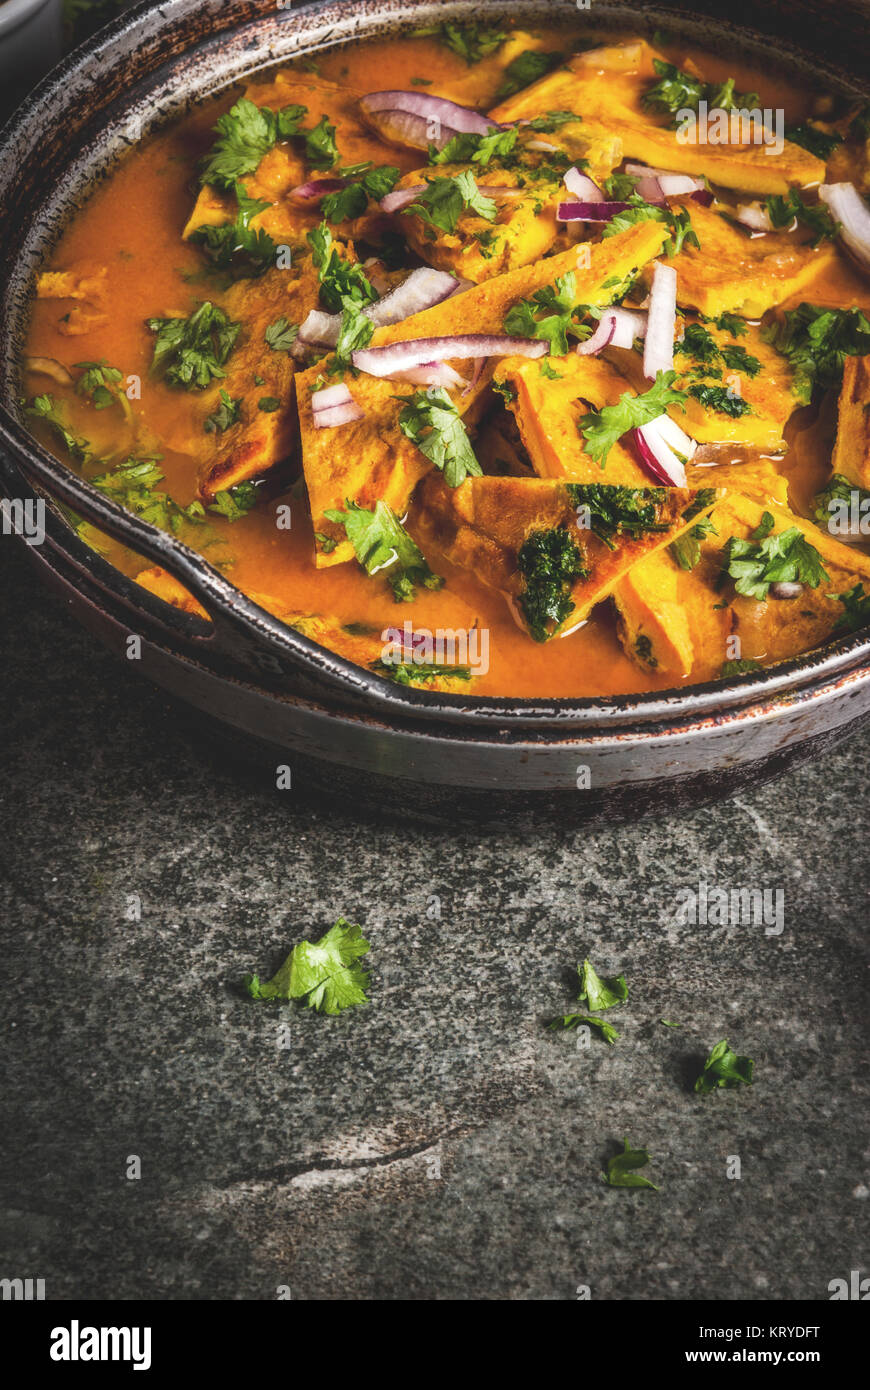 Indian food recipes indian omelet masala egg curry with fresh indian food recipes indian omelet masala egg curry with fresh vegetables tomato hot chili pepper parsley dark stone background copy space forumfinder Images